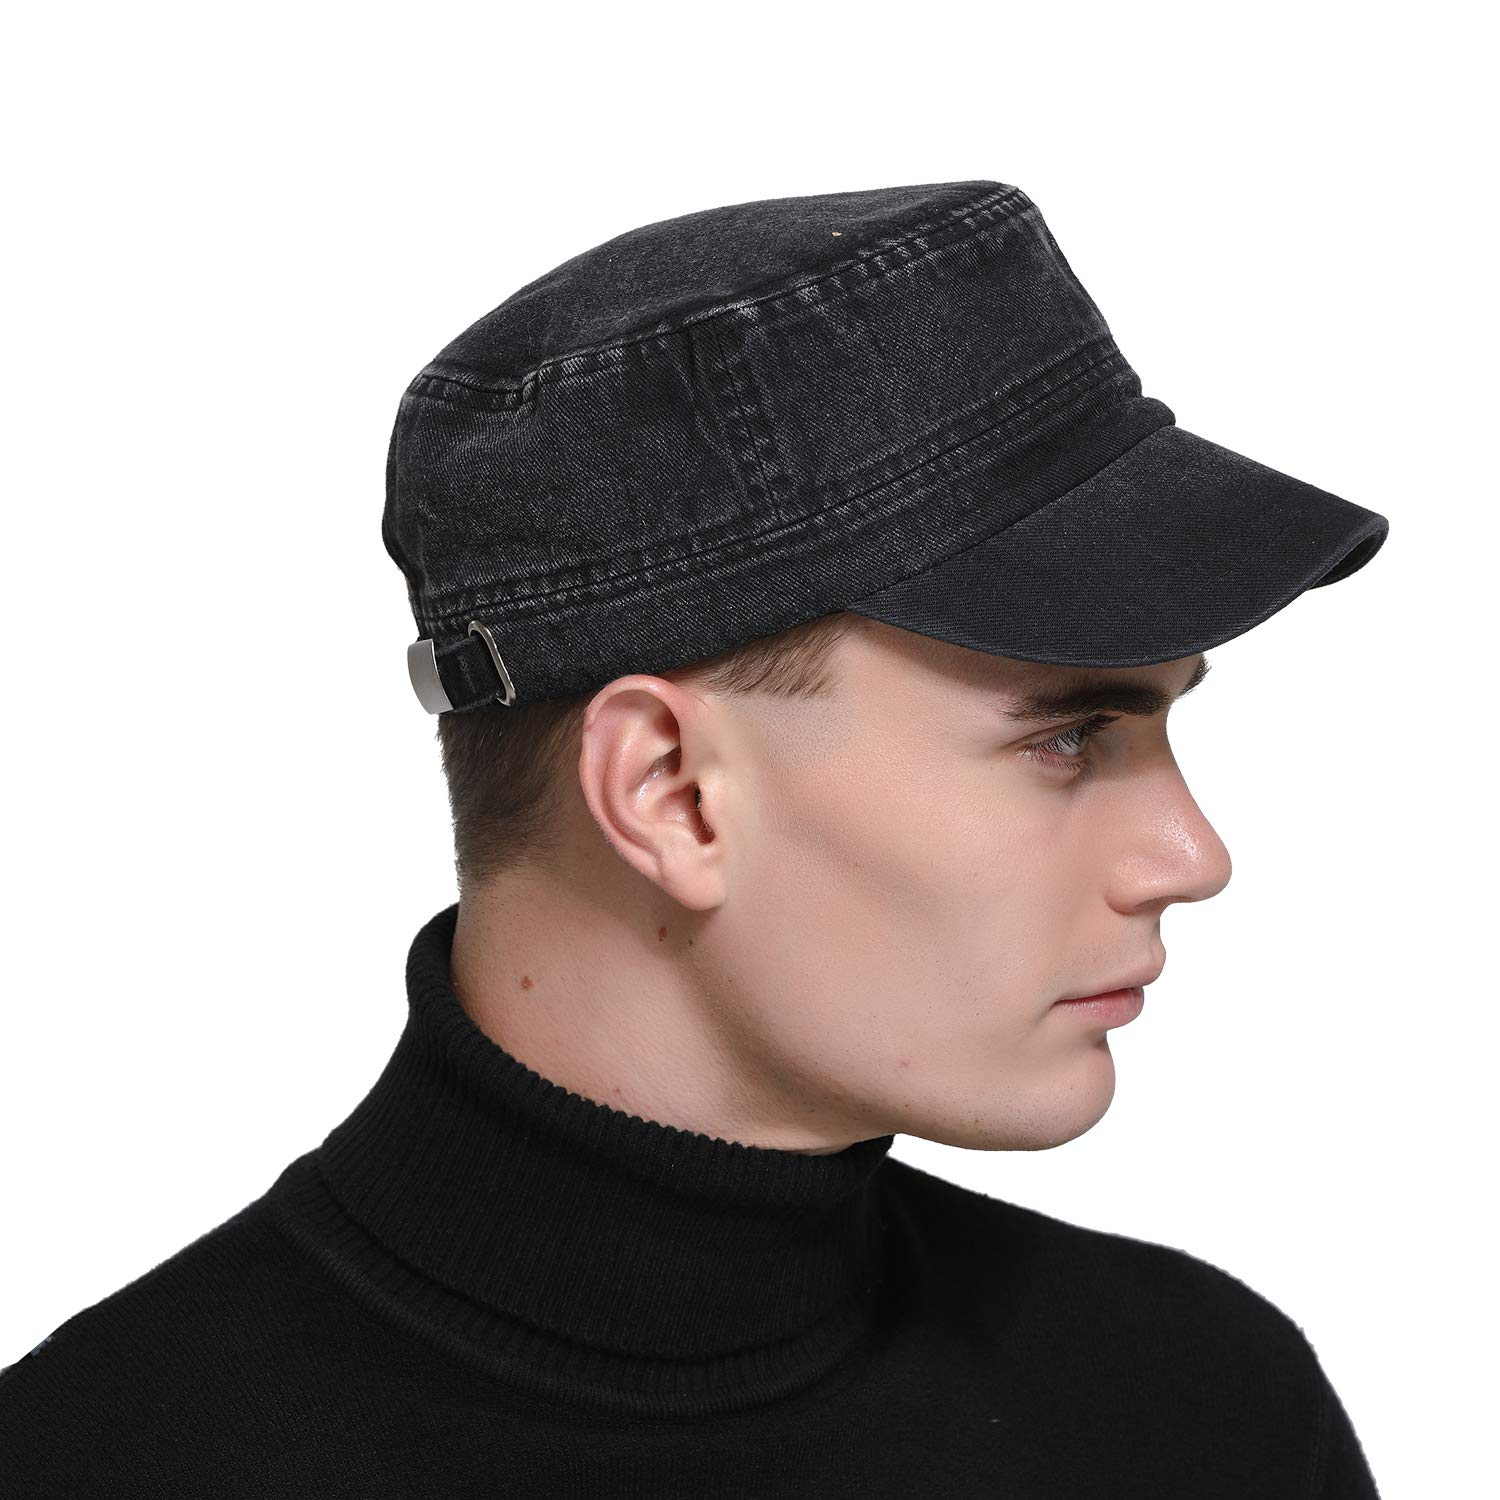 8ae67dad286 Free Bird 99 Low Profile Cotton Flat Top Peaked Army Military Cadet Cap Hat  (Black(13442))  Amazon.ca  Clothing   Accessories